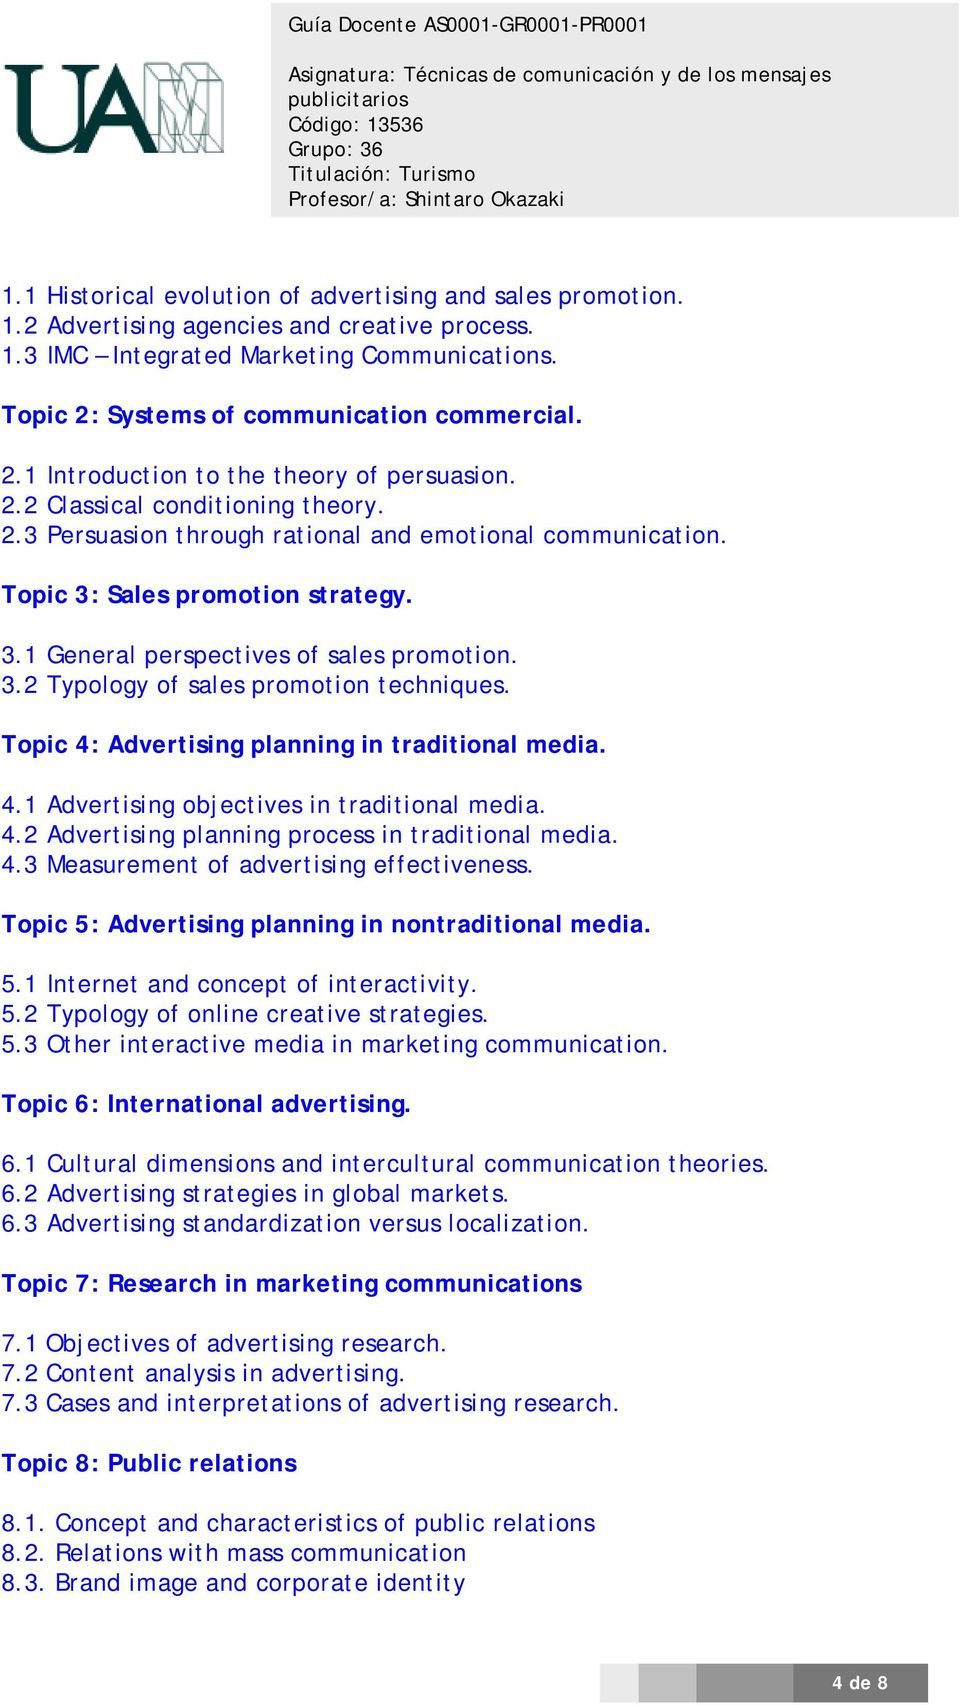 3.2 Typology of sales promotion techniques. Topic 4: Advertising planning in traditional media. 4.1 Advertising objectives in traditional media. 4.2 Advertising planning process in traditional media.